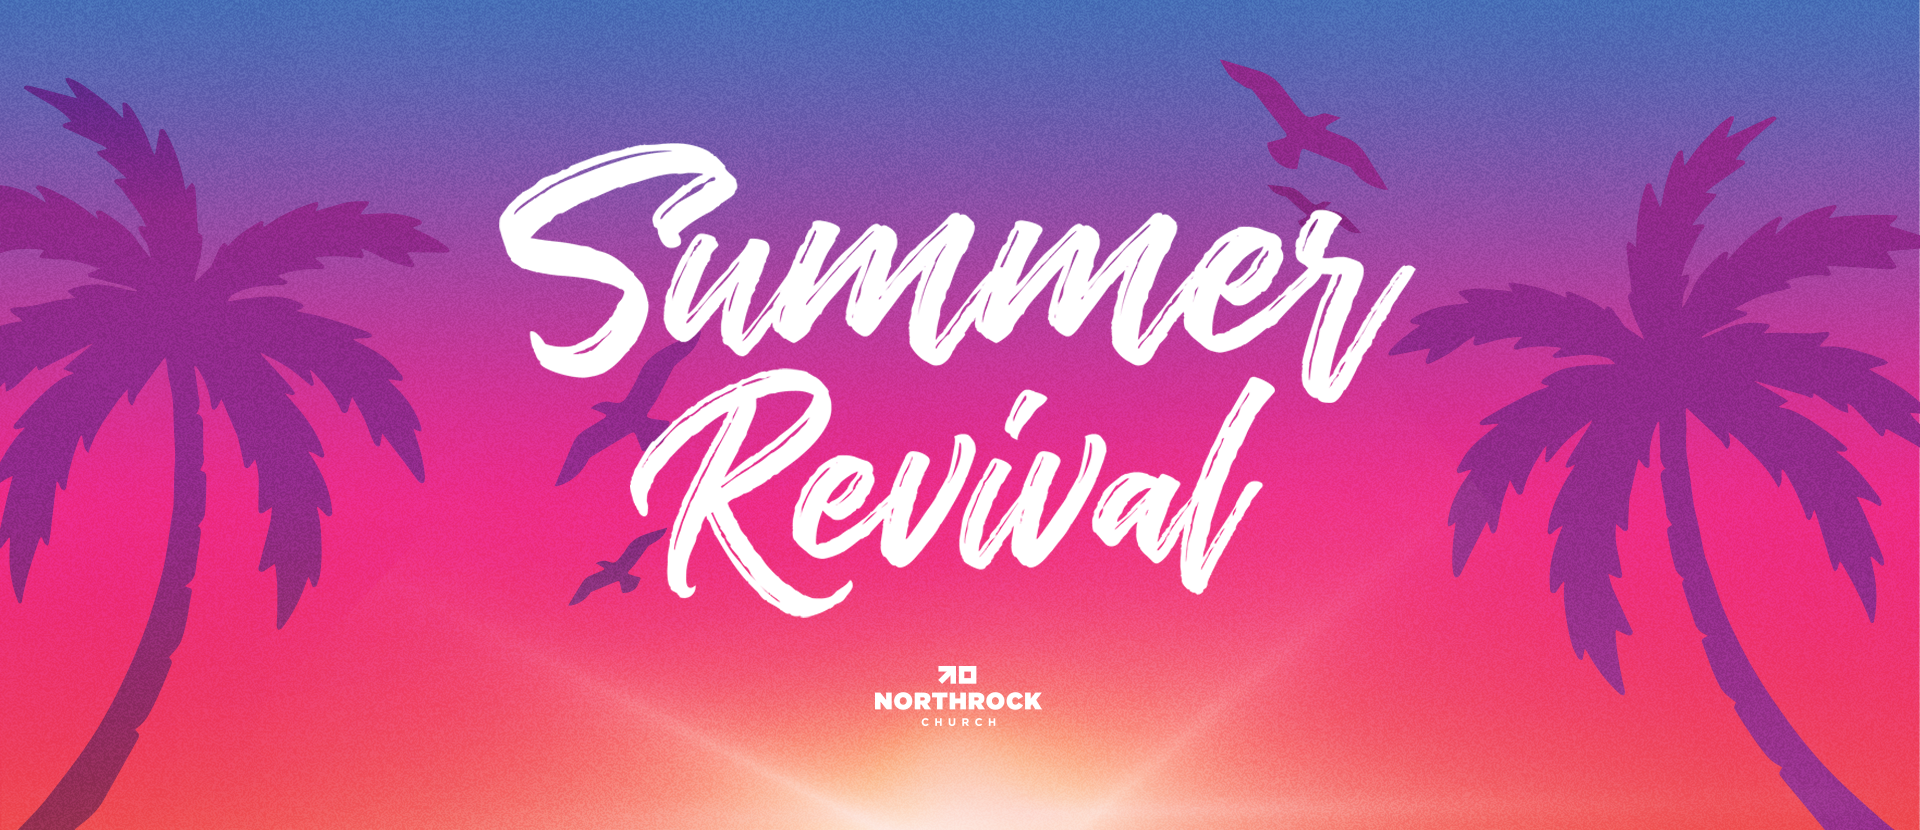 Summer Revival Background Screen.png